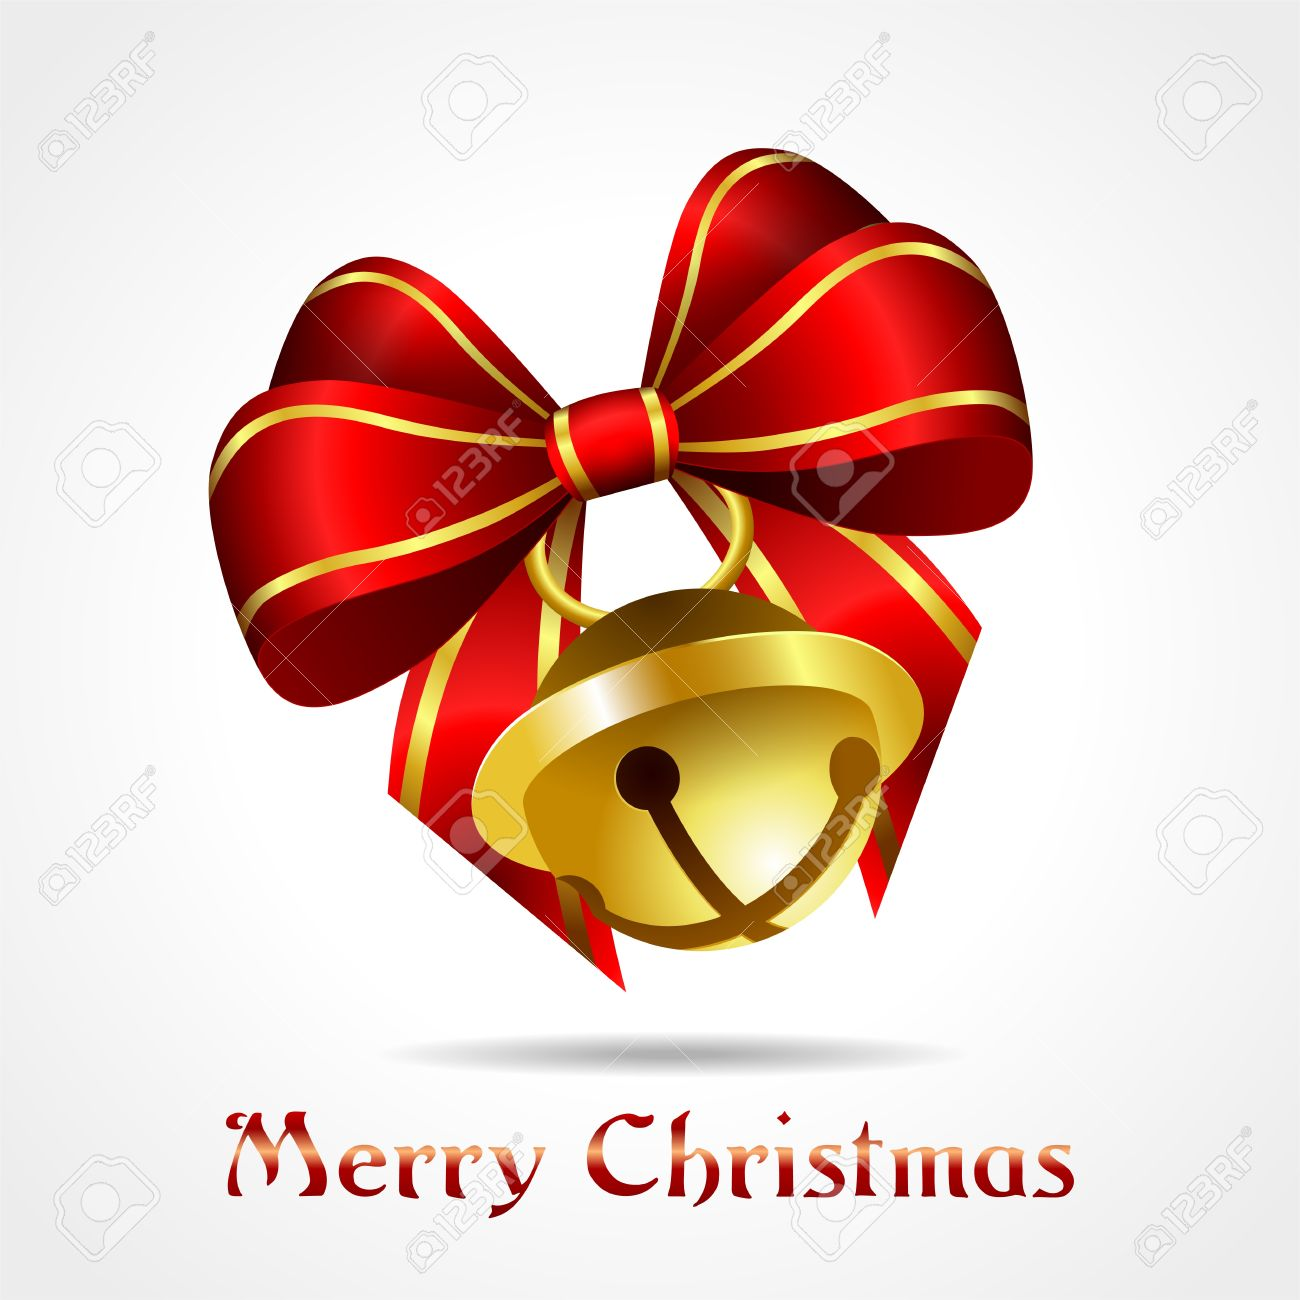 golden jingle bell with red ribbon on white background, christmas